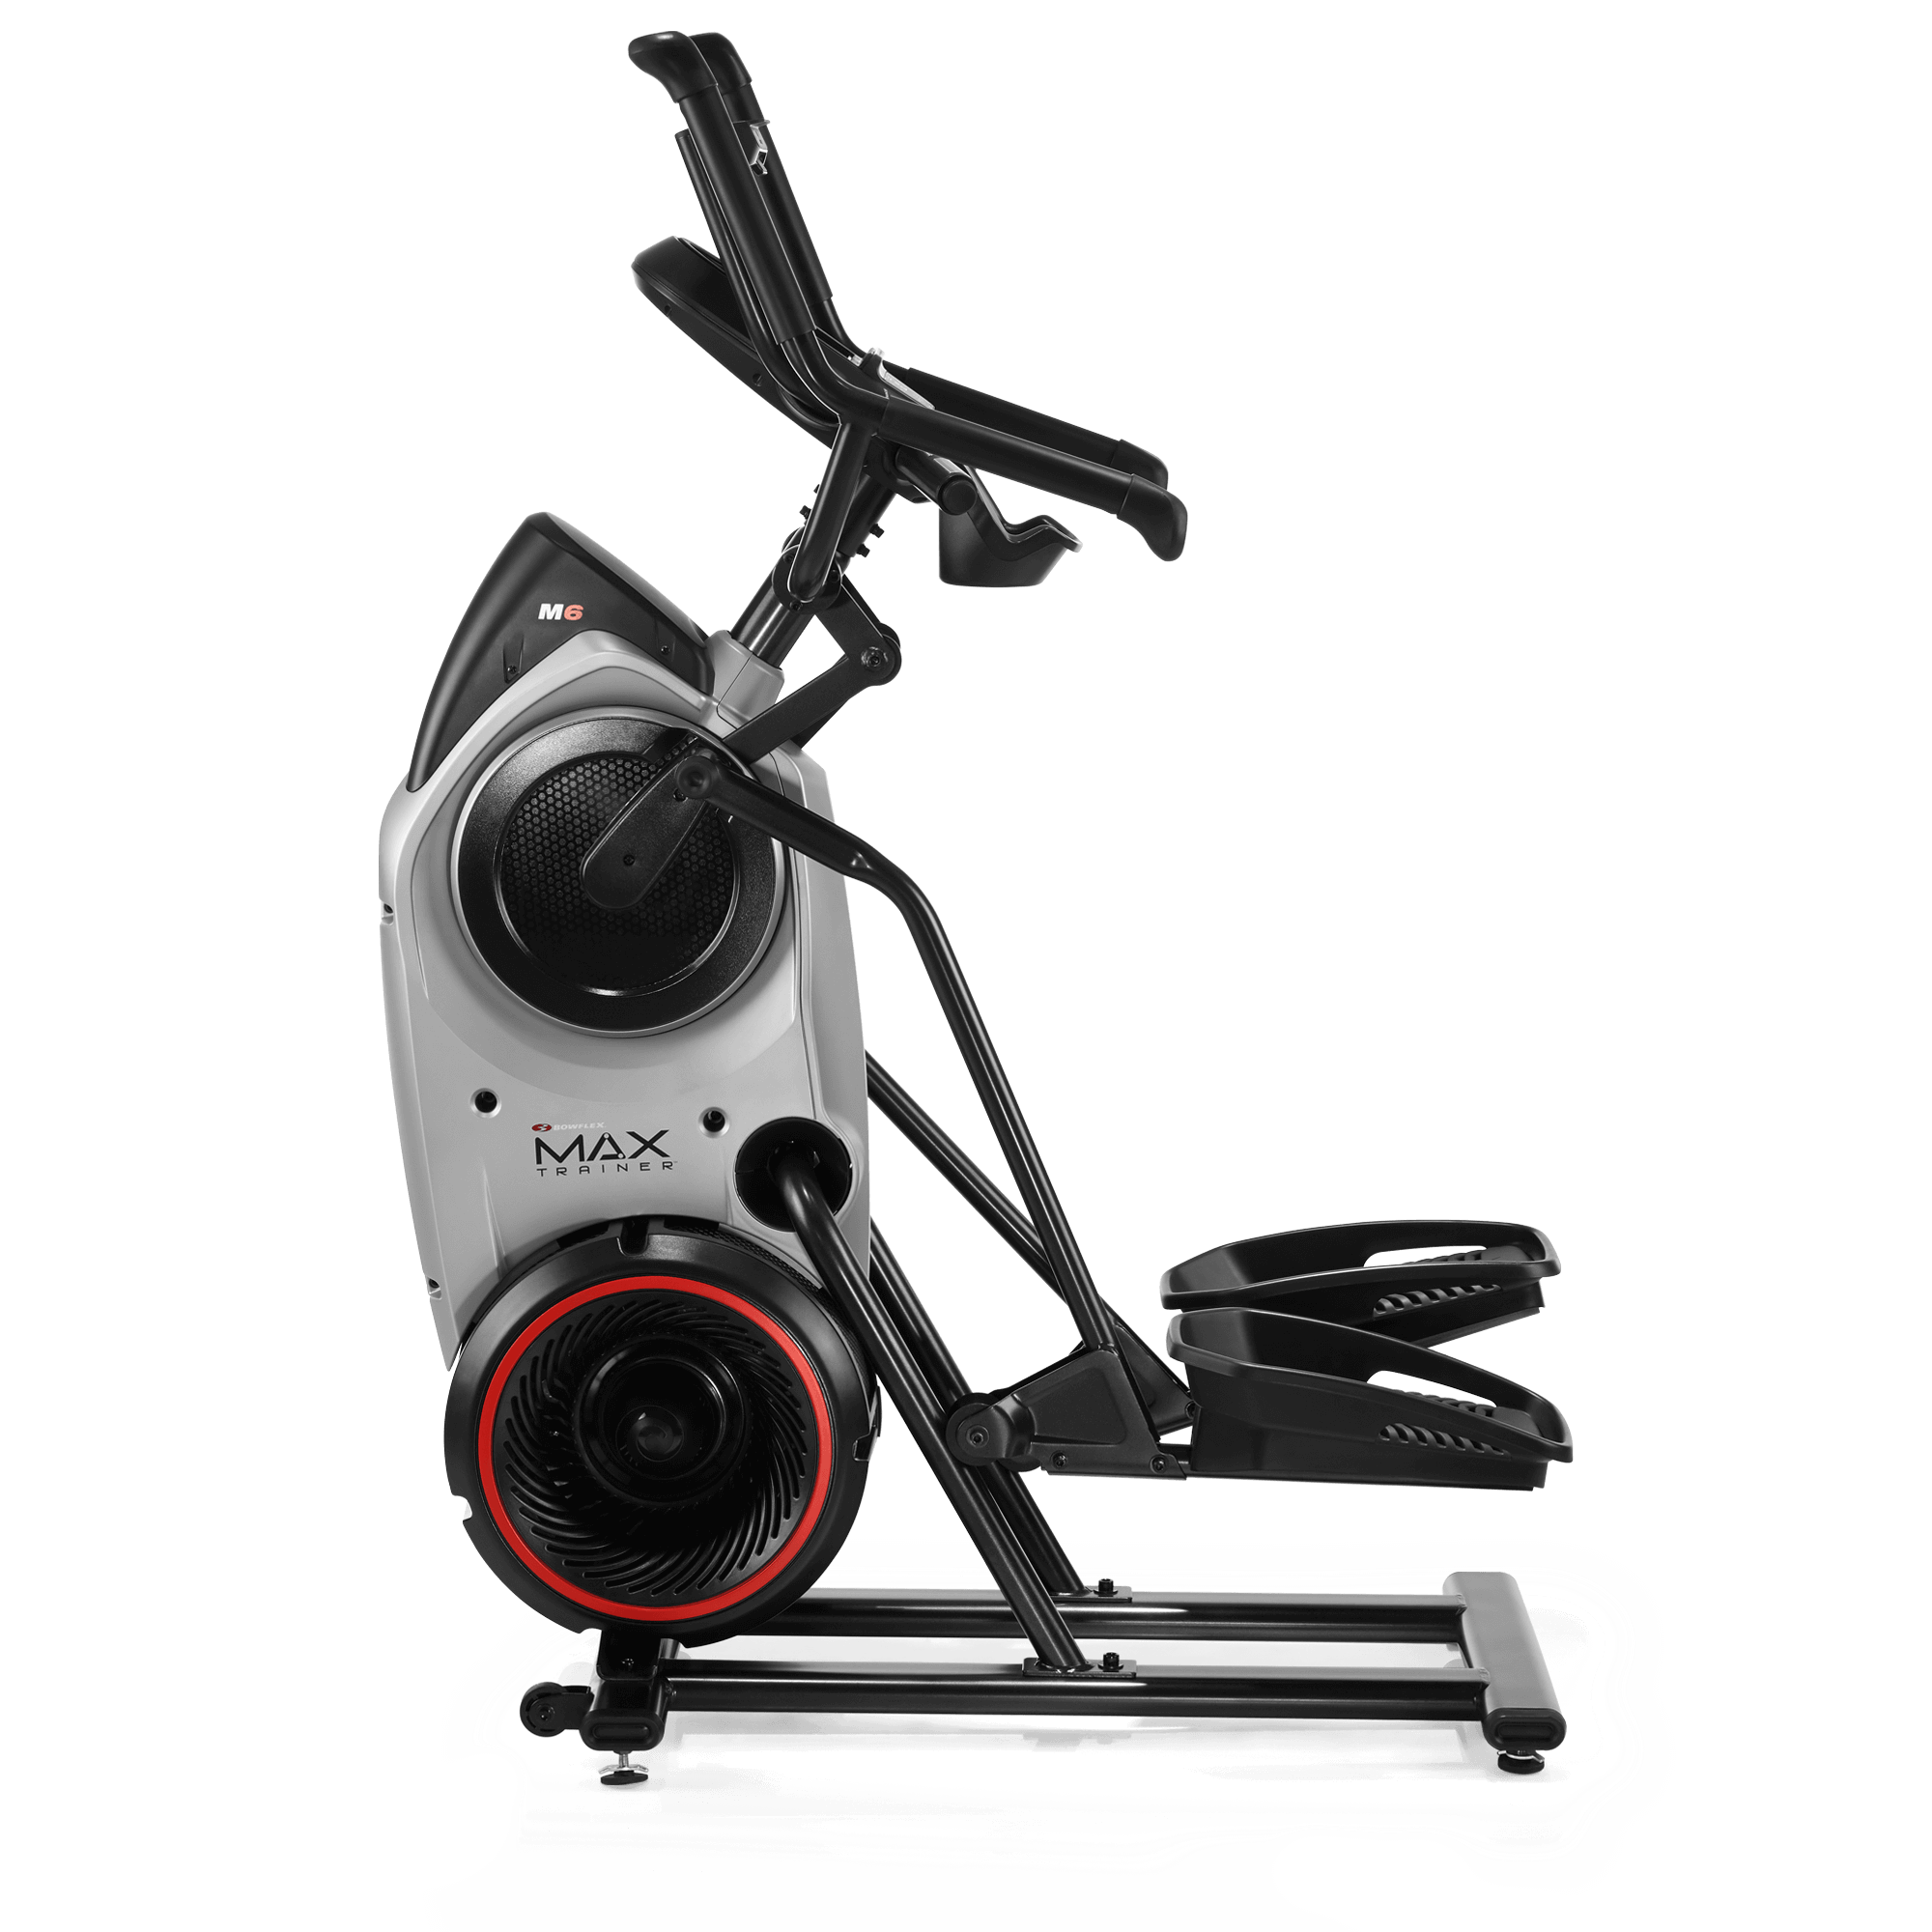 uploads gym equipment gym equipment PNG52 4